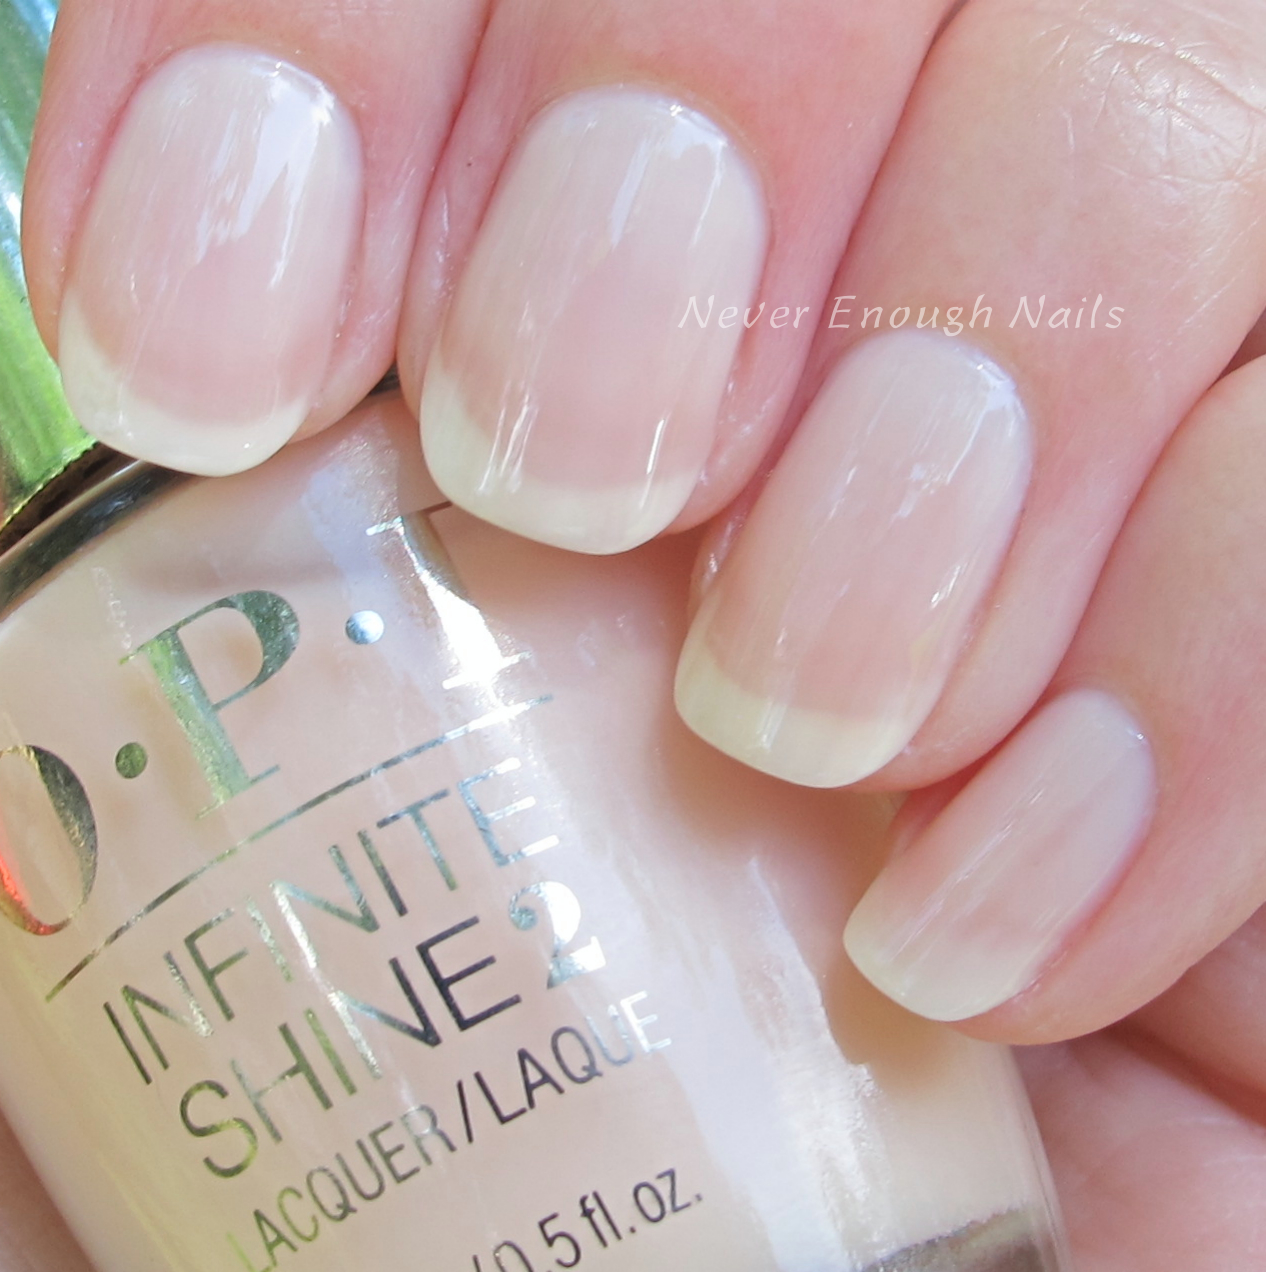 Never Enough Nails Opi Infinite Shine Softshades Swatches